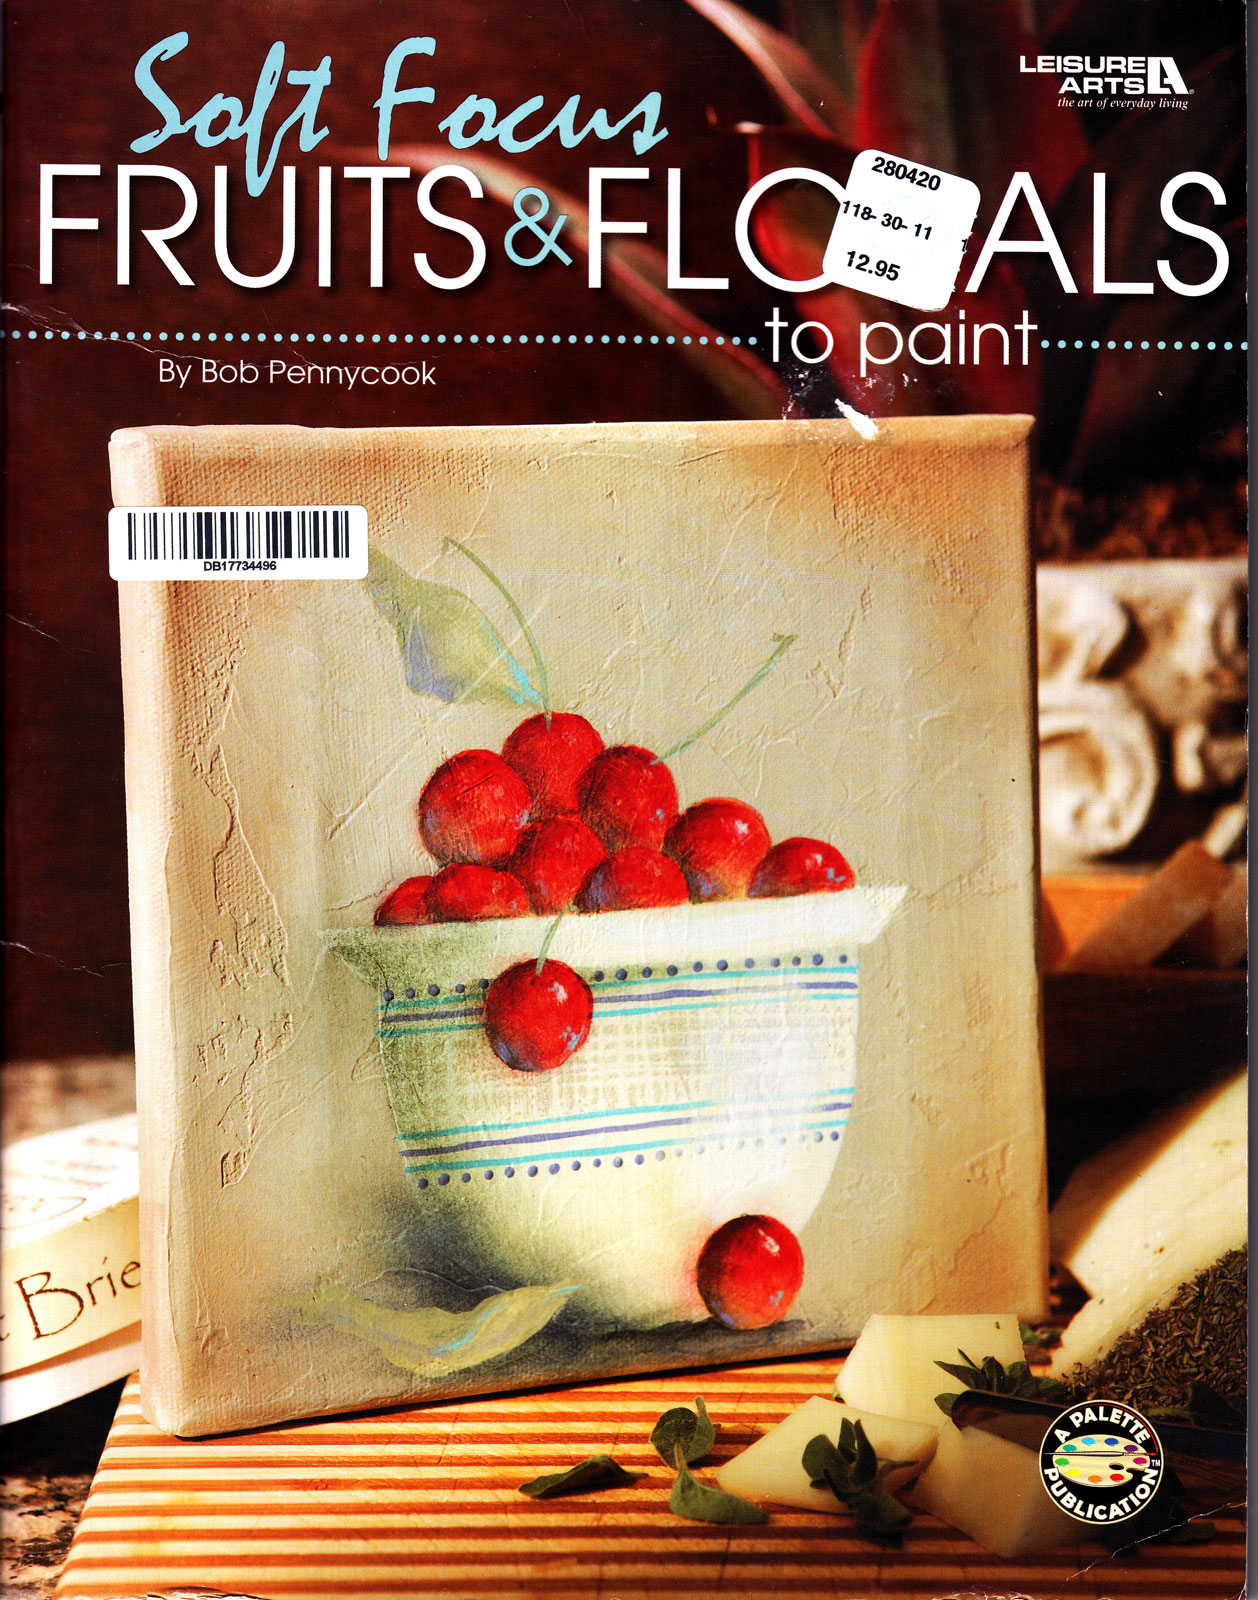 Fruits and florals - Bob Pennycook